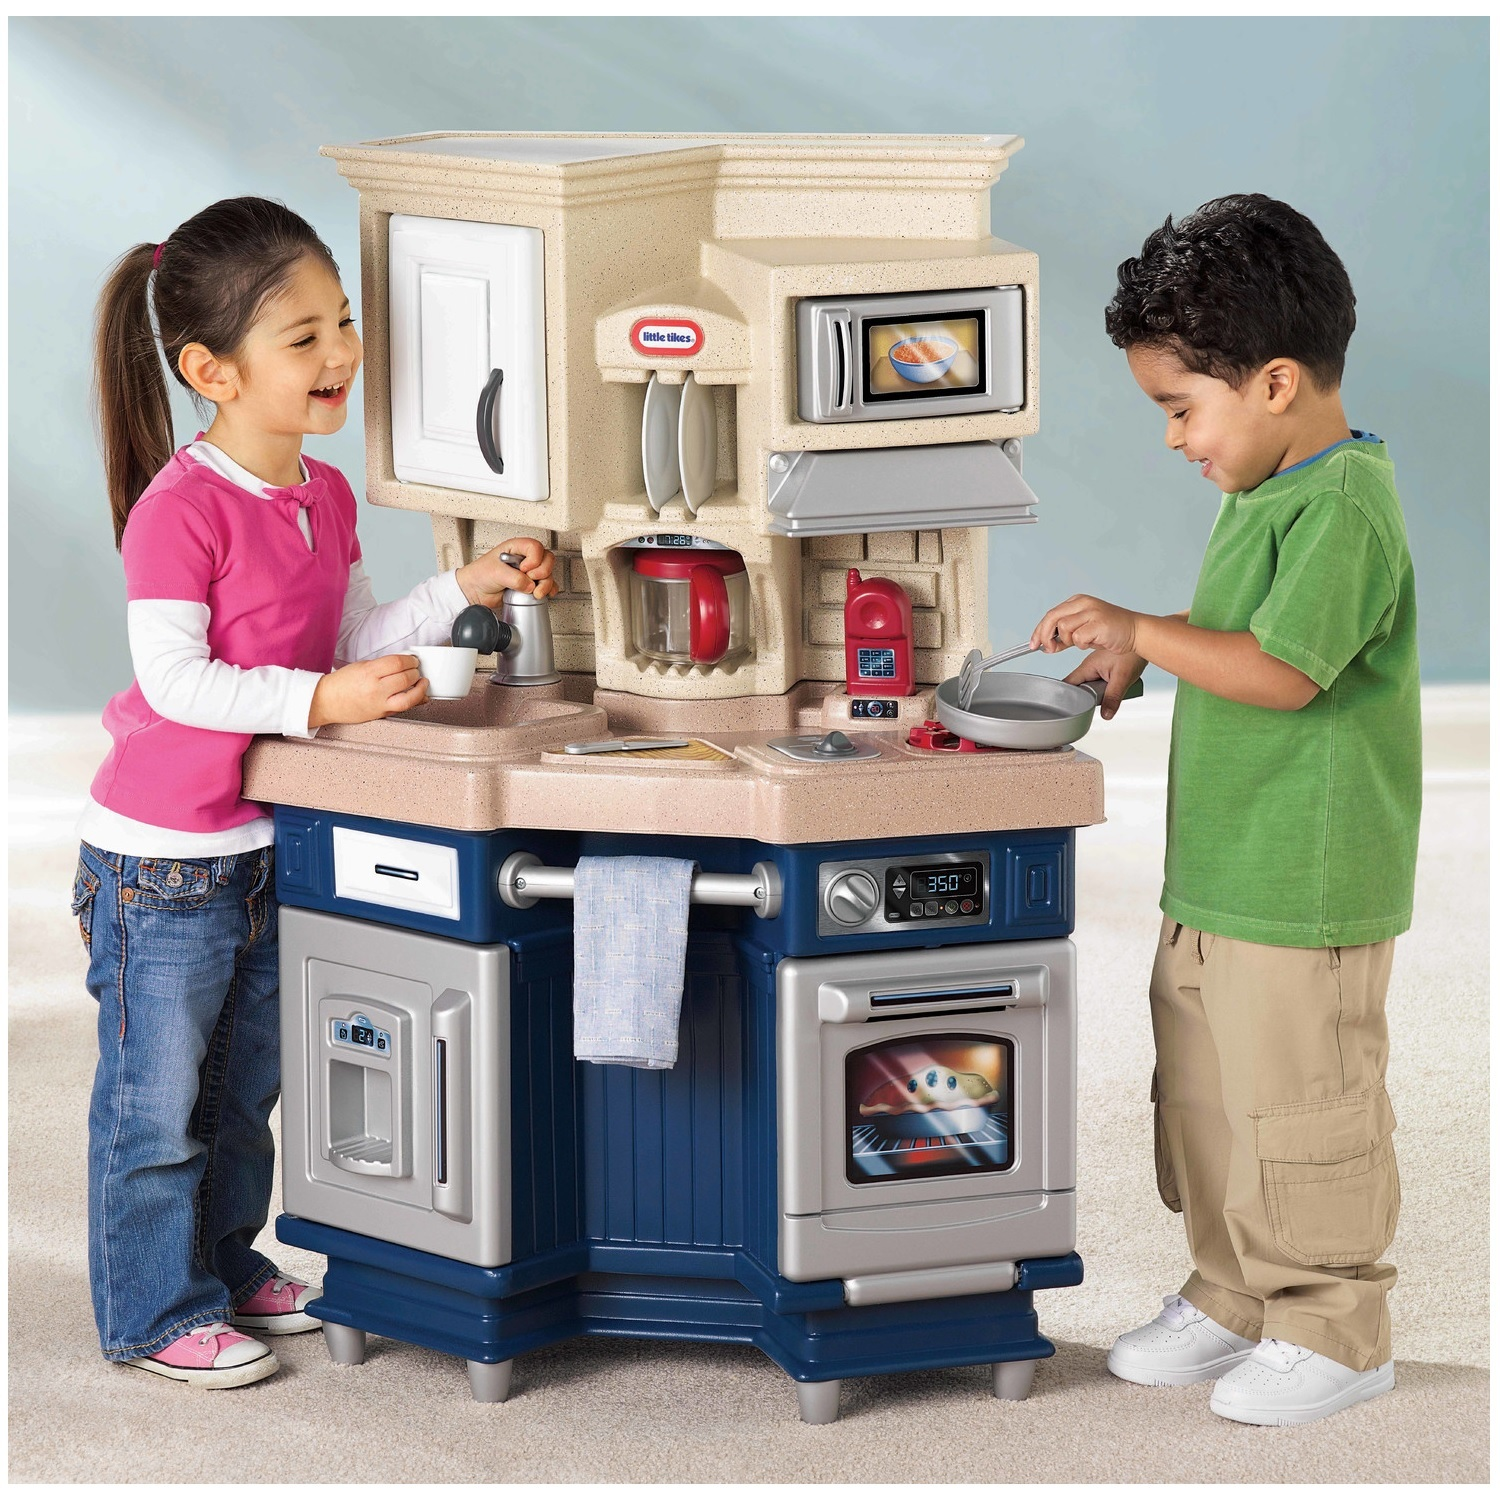 Kitchen Play Pretend Kids Toy Super Chef Cooking Playset. Restaurant Decorating Ideas. Rent A Hotel Room For A Month. Book A Room.com. Paint For Girl Room. Decorative Sailboats. Girl Decorations. Mirrored Wall Decor. Decorative Electrical Switches